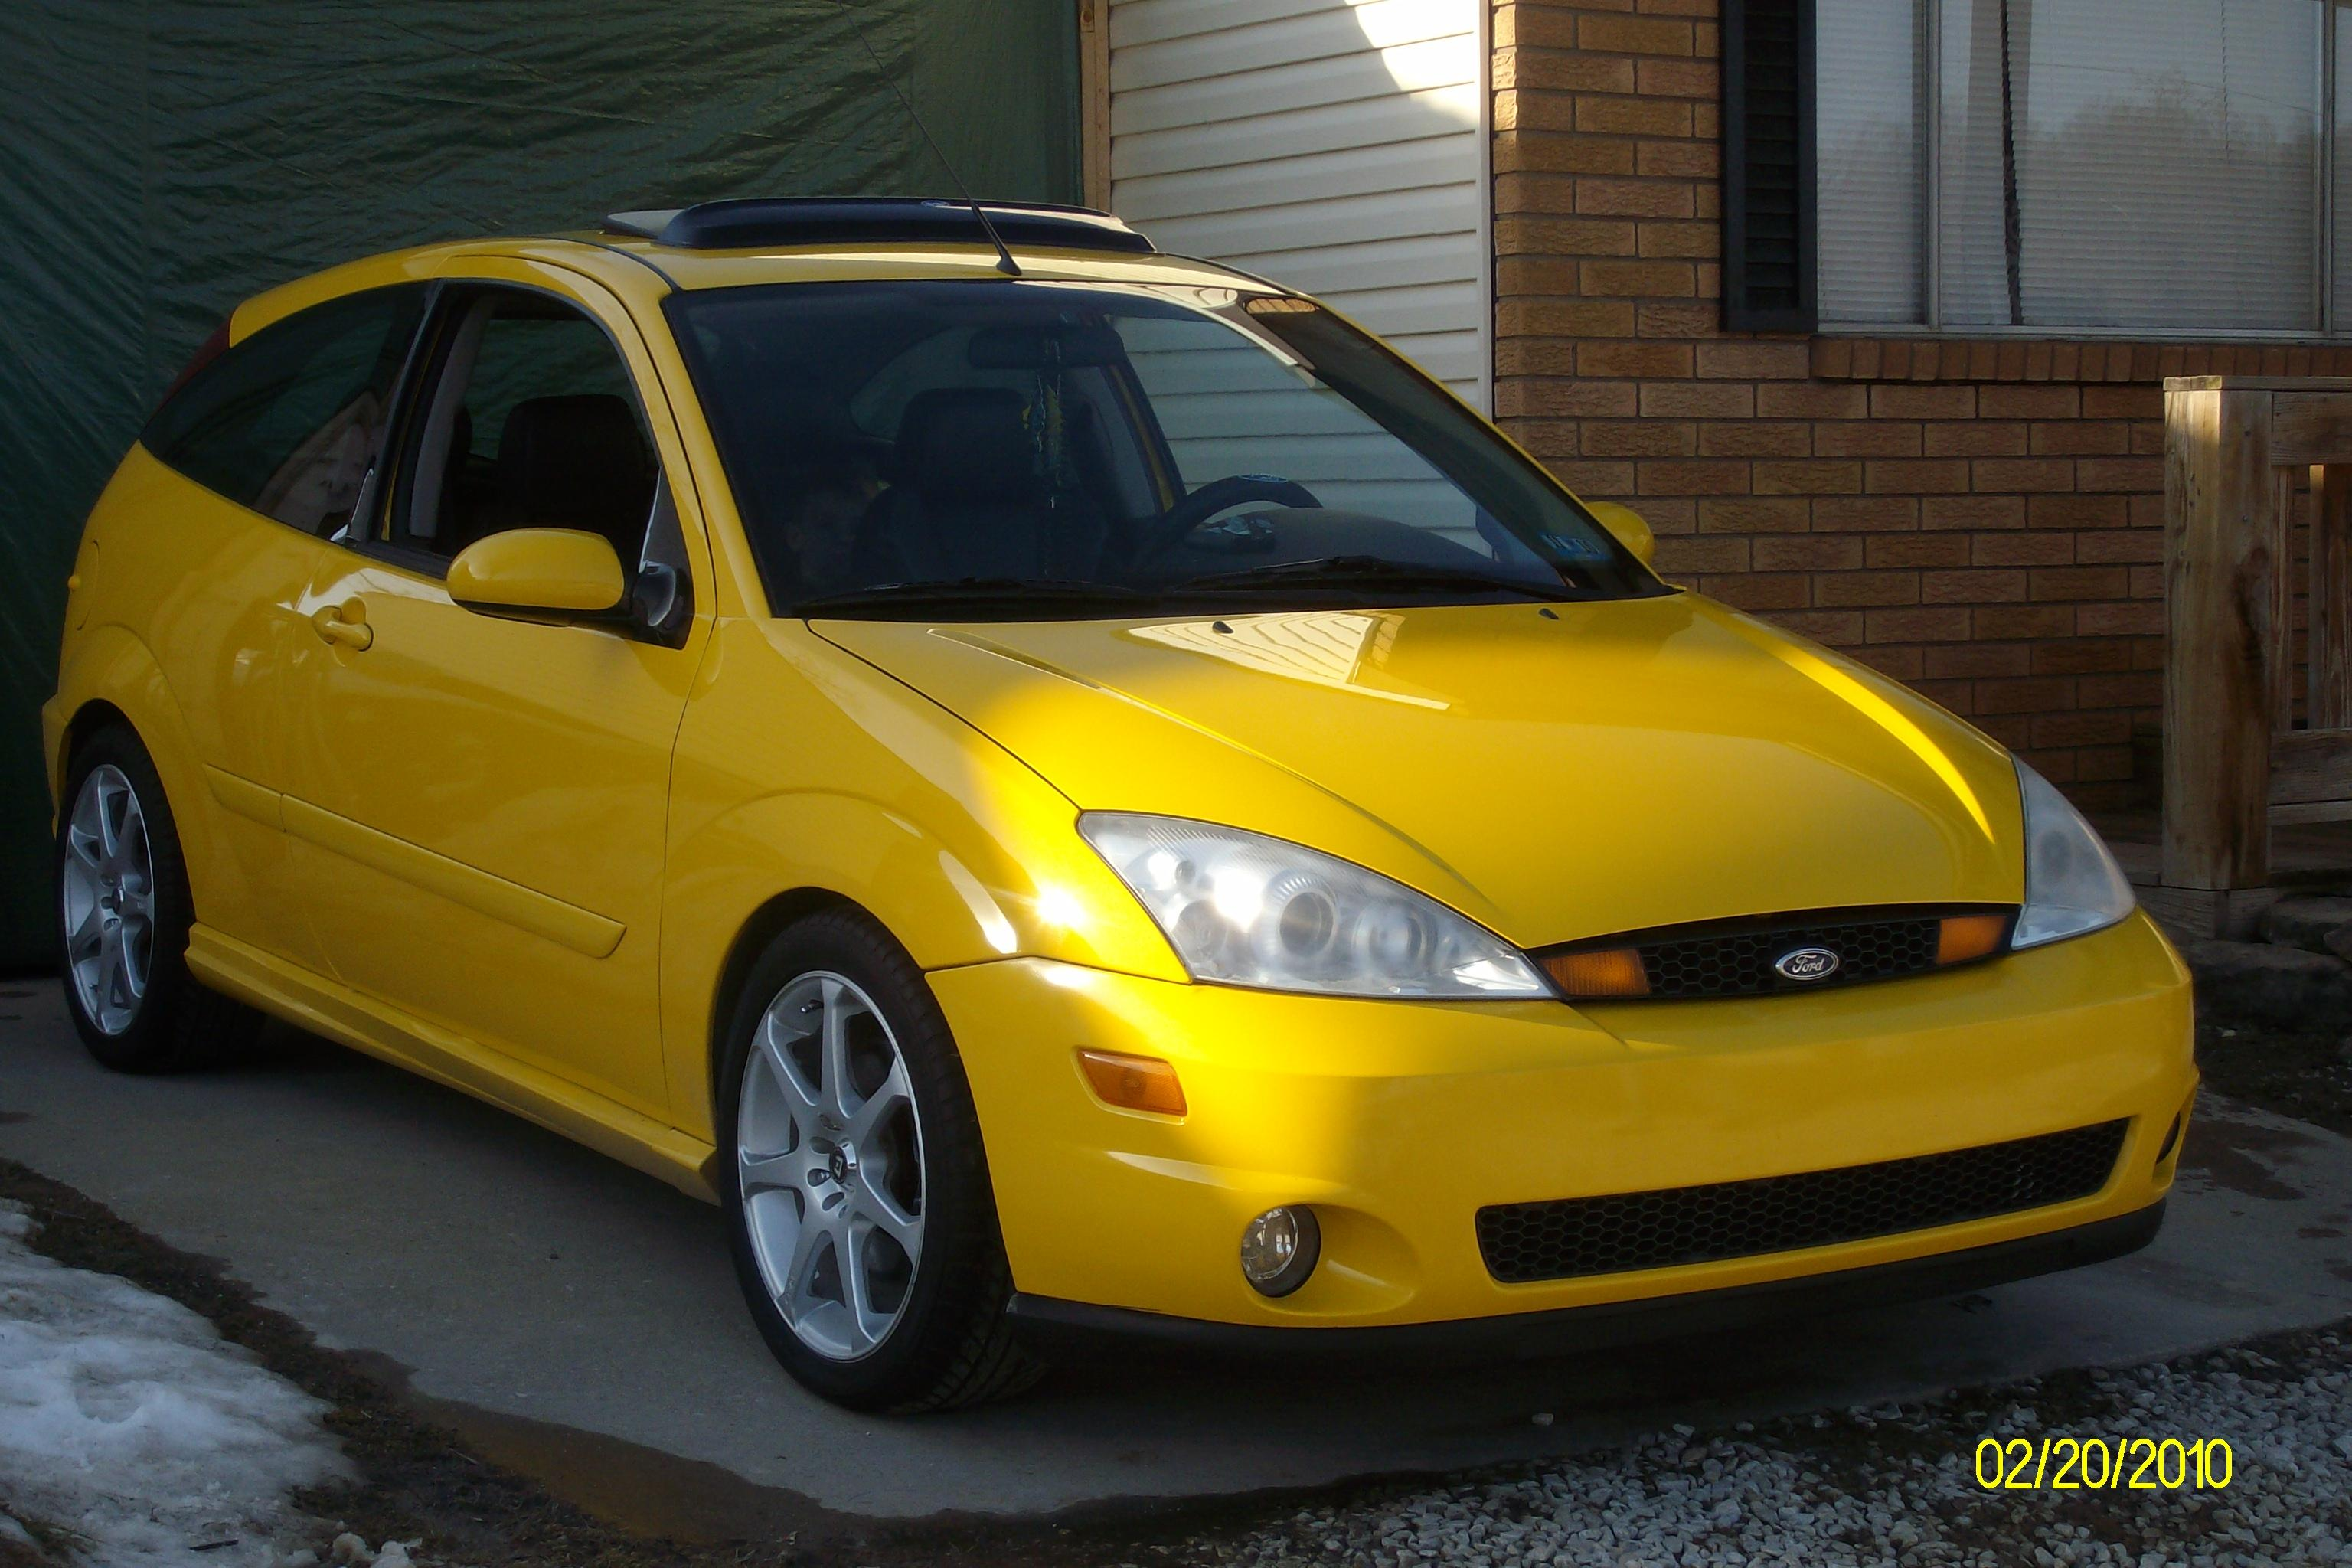 SASSYMOMMA26's 2003 Ford Focus